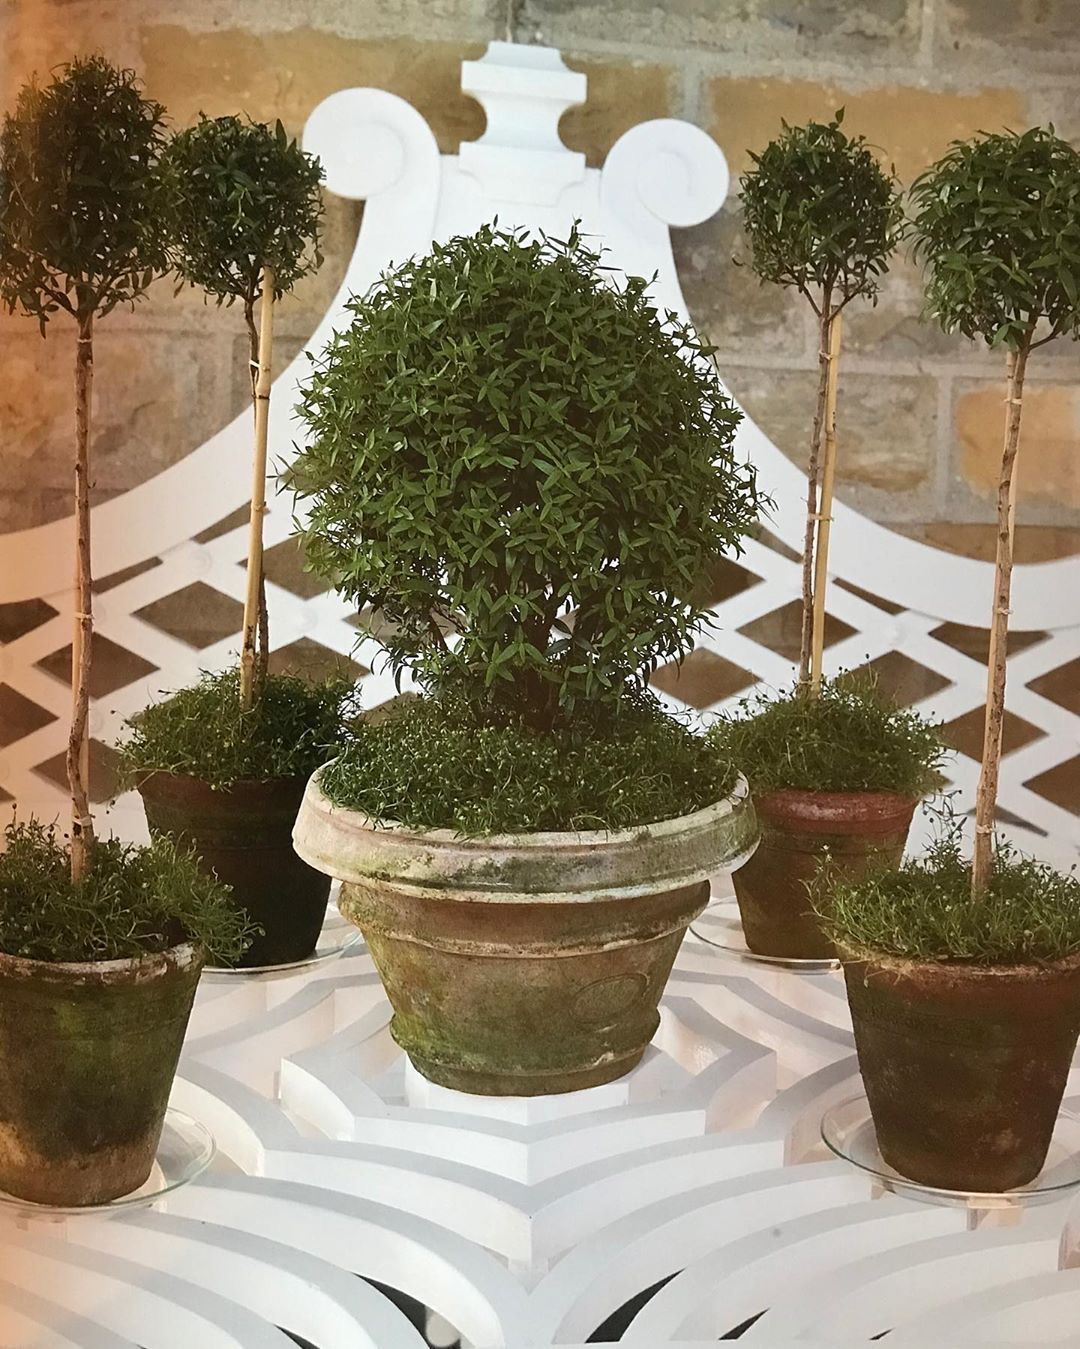 Pin By Jodi On ~Topiaries & Boxwoods~